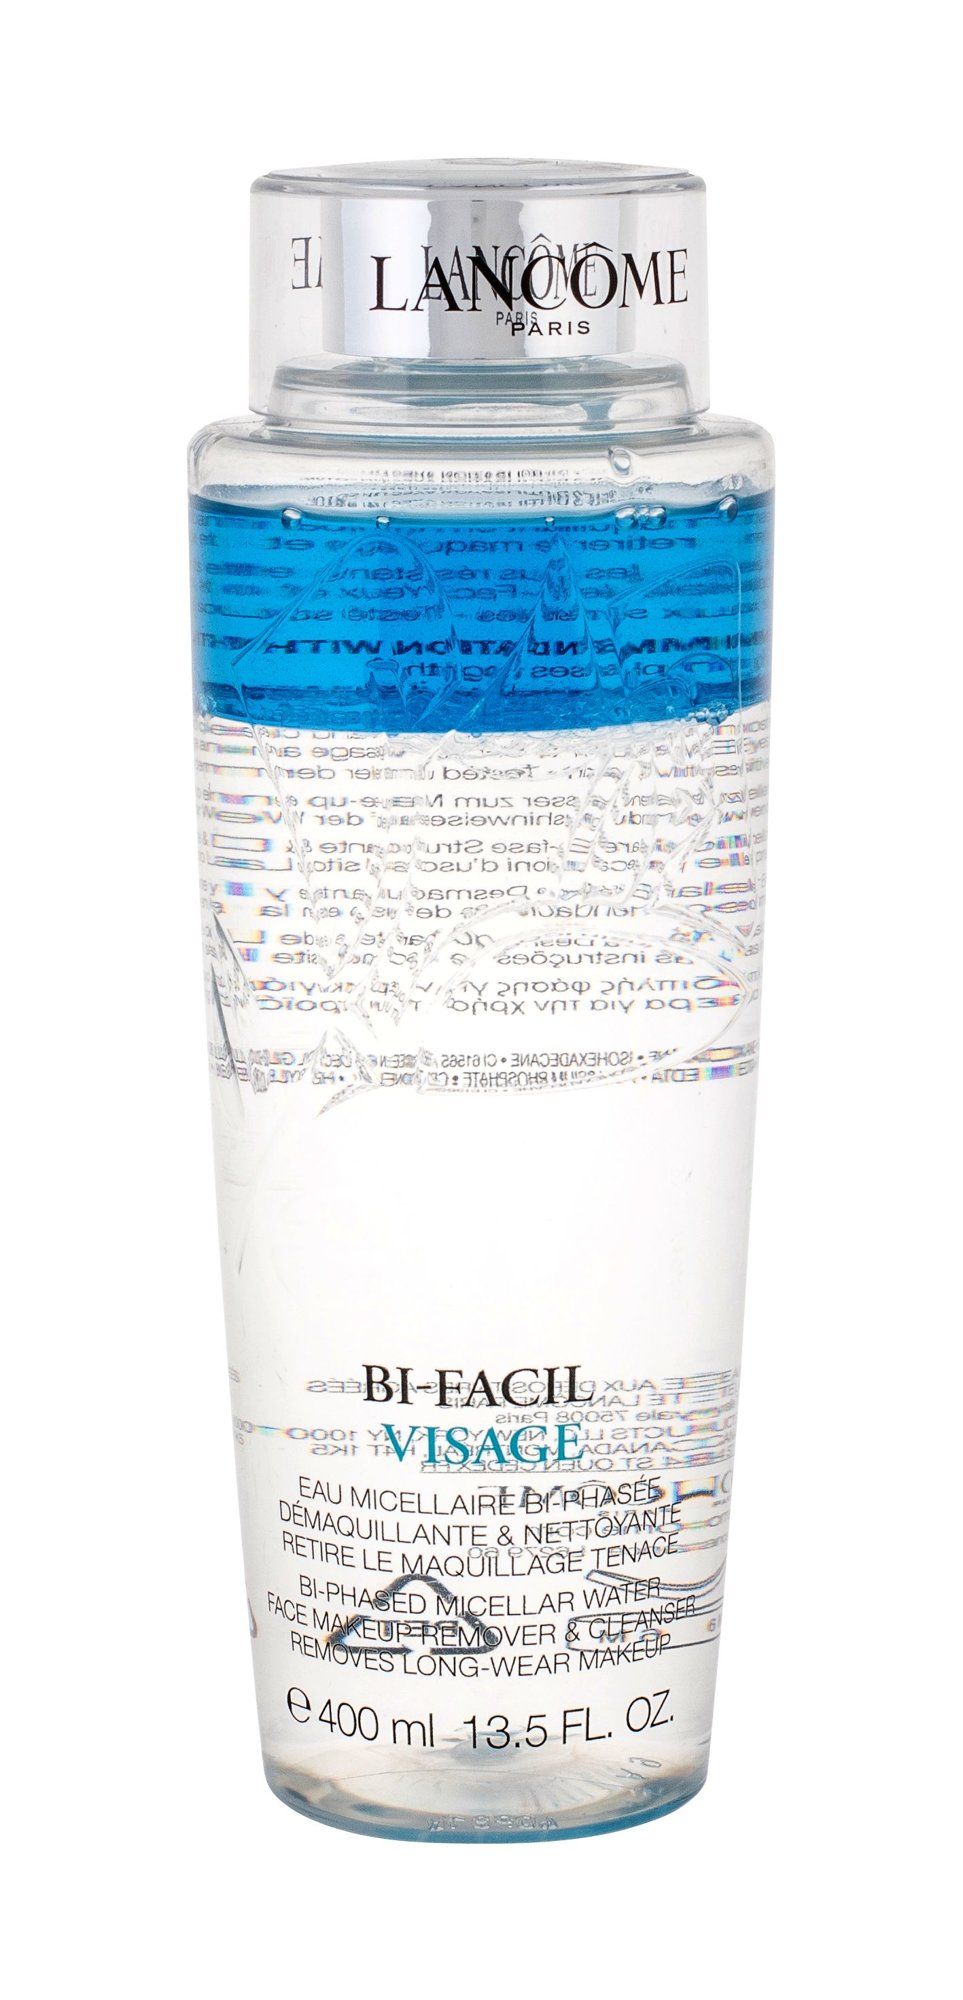 Lancôme Bi-Facil Micellar Water 400ml